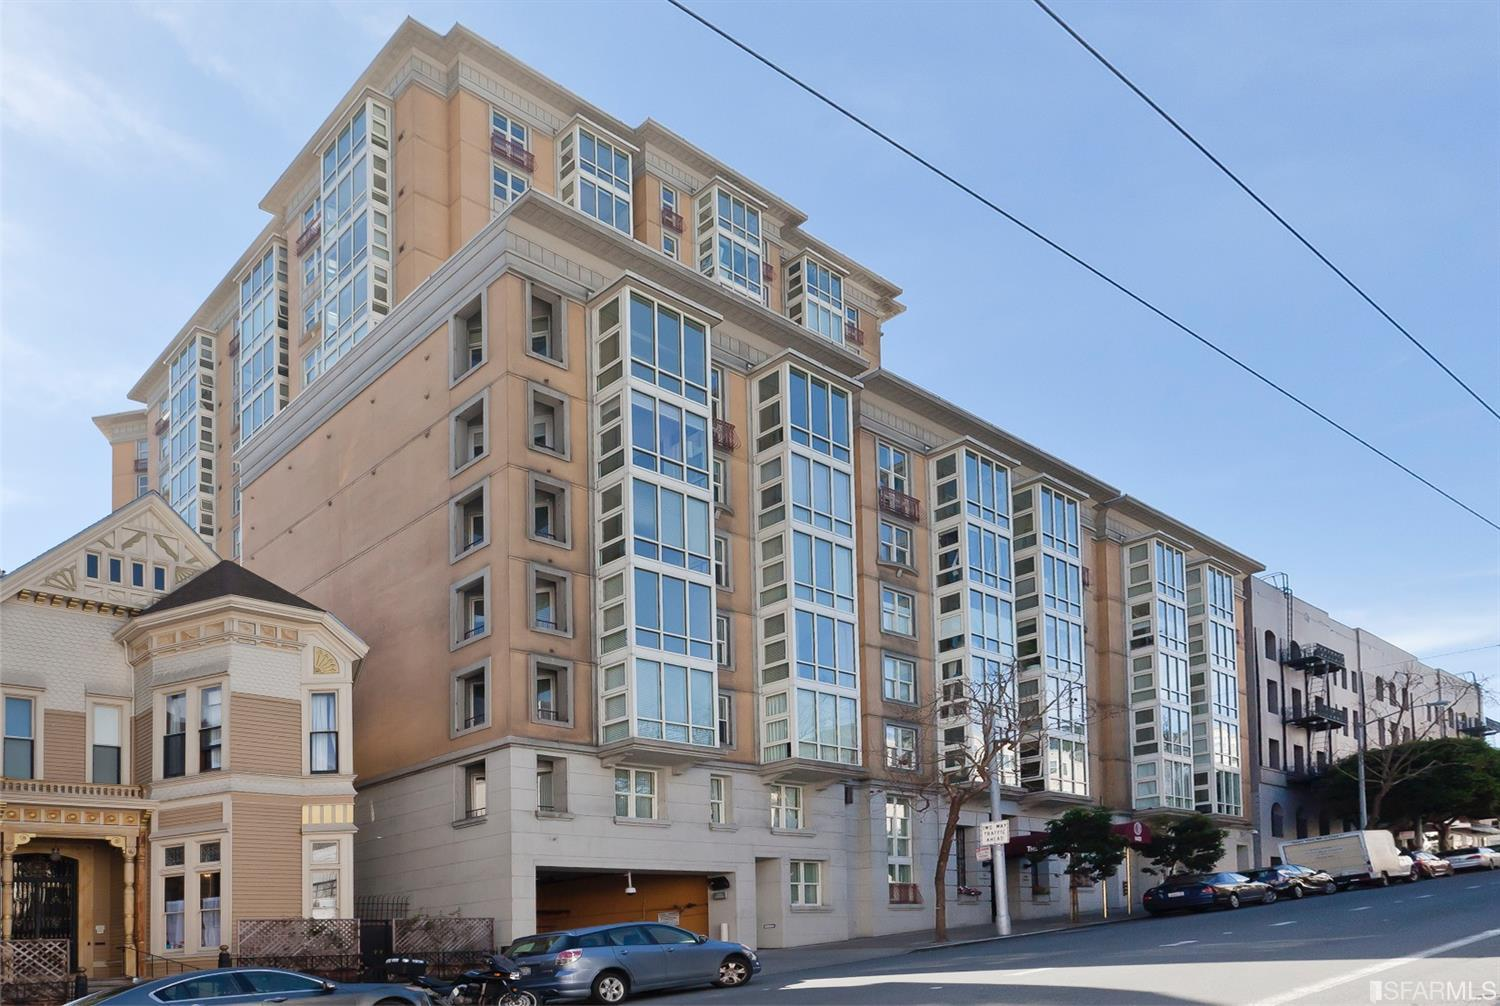 1483 Sutter #722 – San Francisco